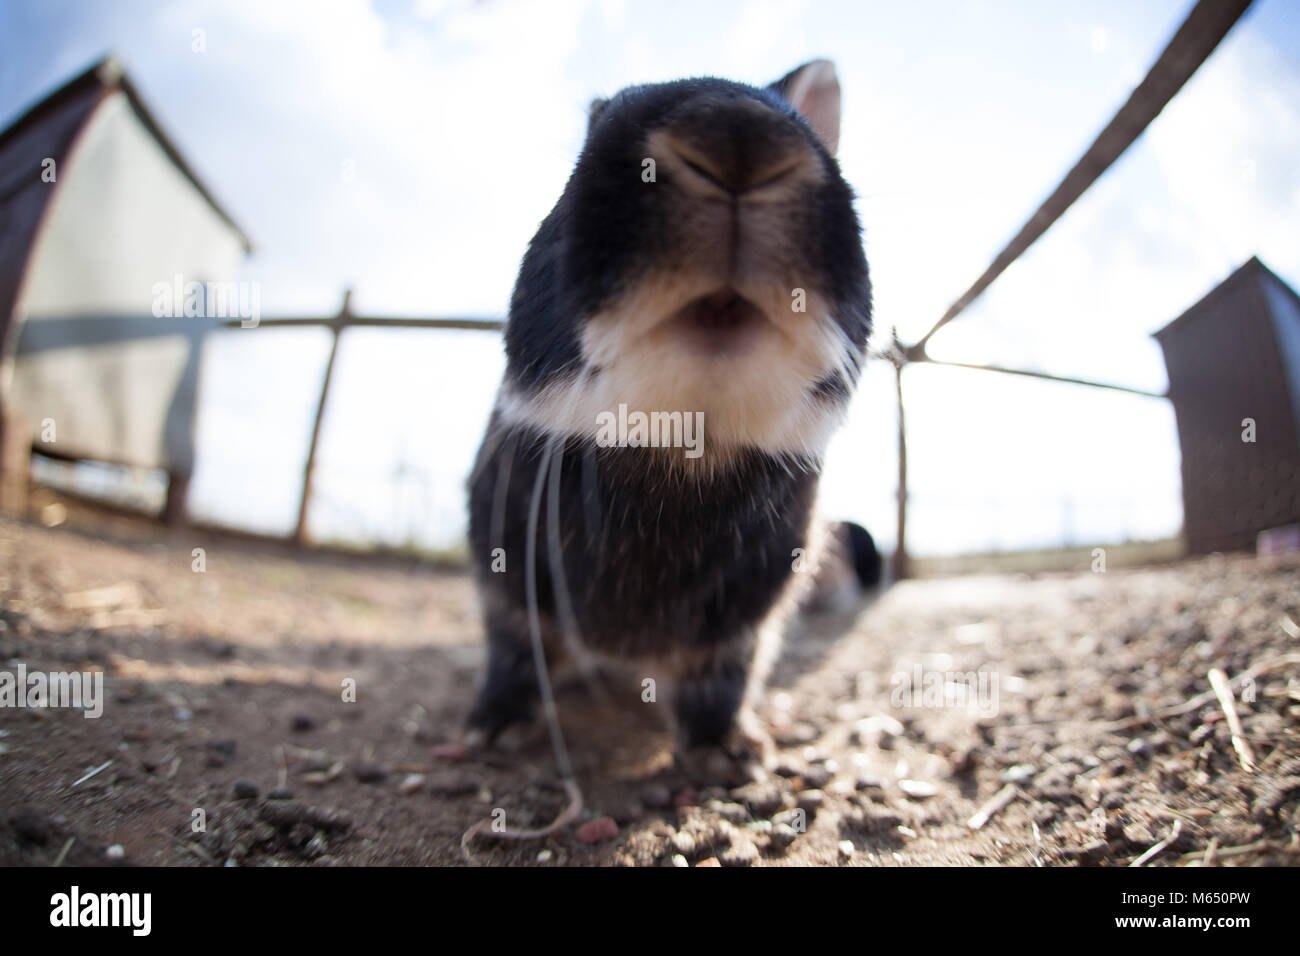 Extreme close up of black and white rabbit outdoors on farm with nose in camera - Stock Image